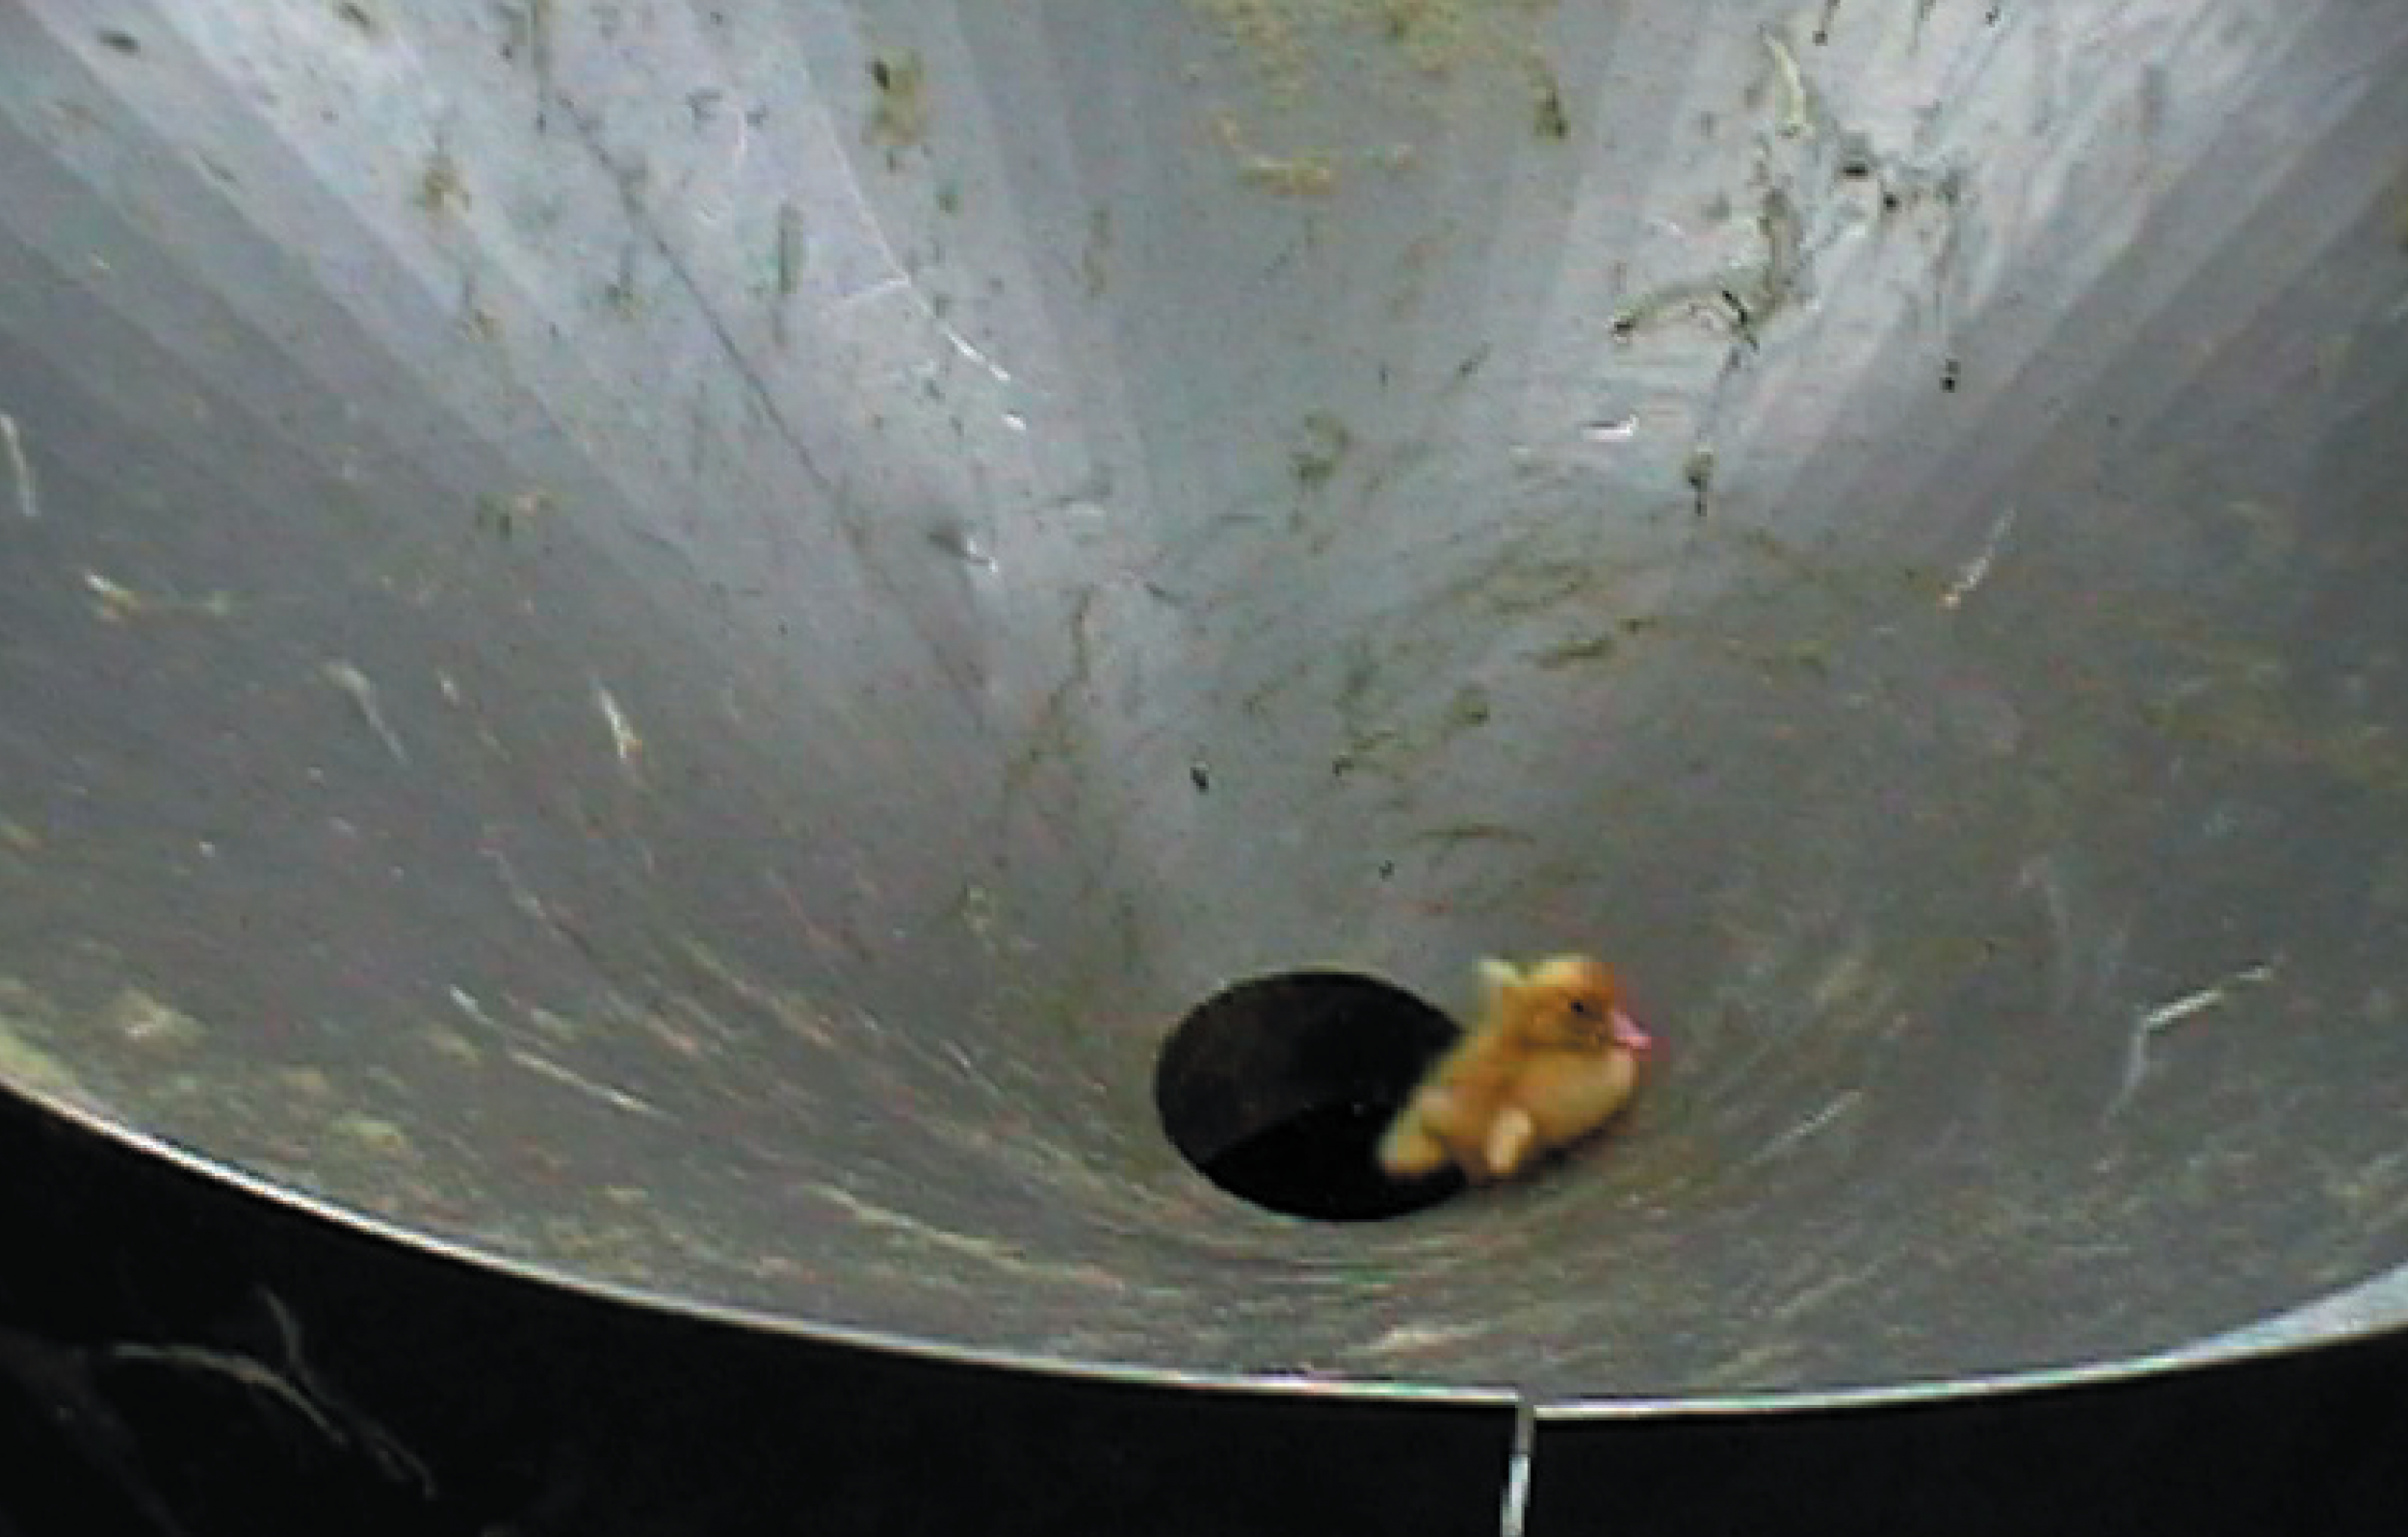 Watch Shocking Video Of Live Ducklings Being Thrown Into